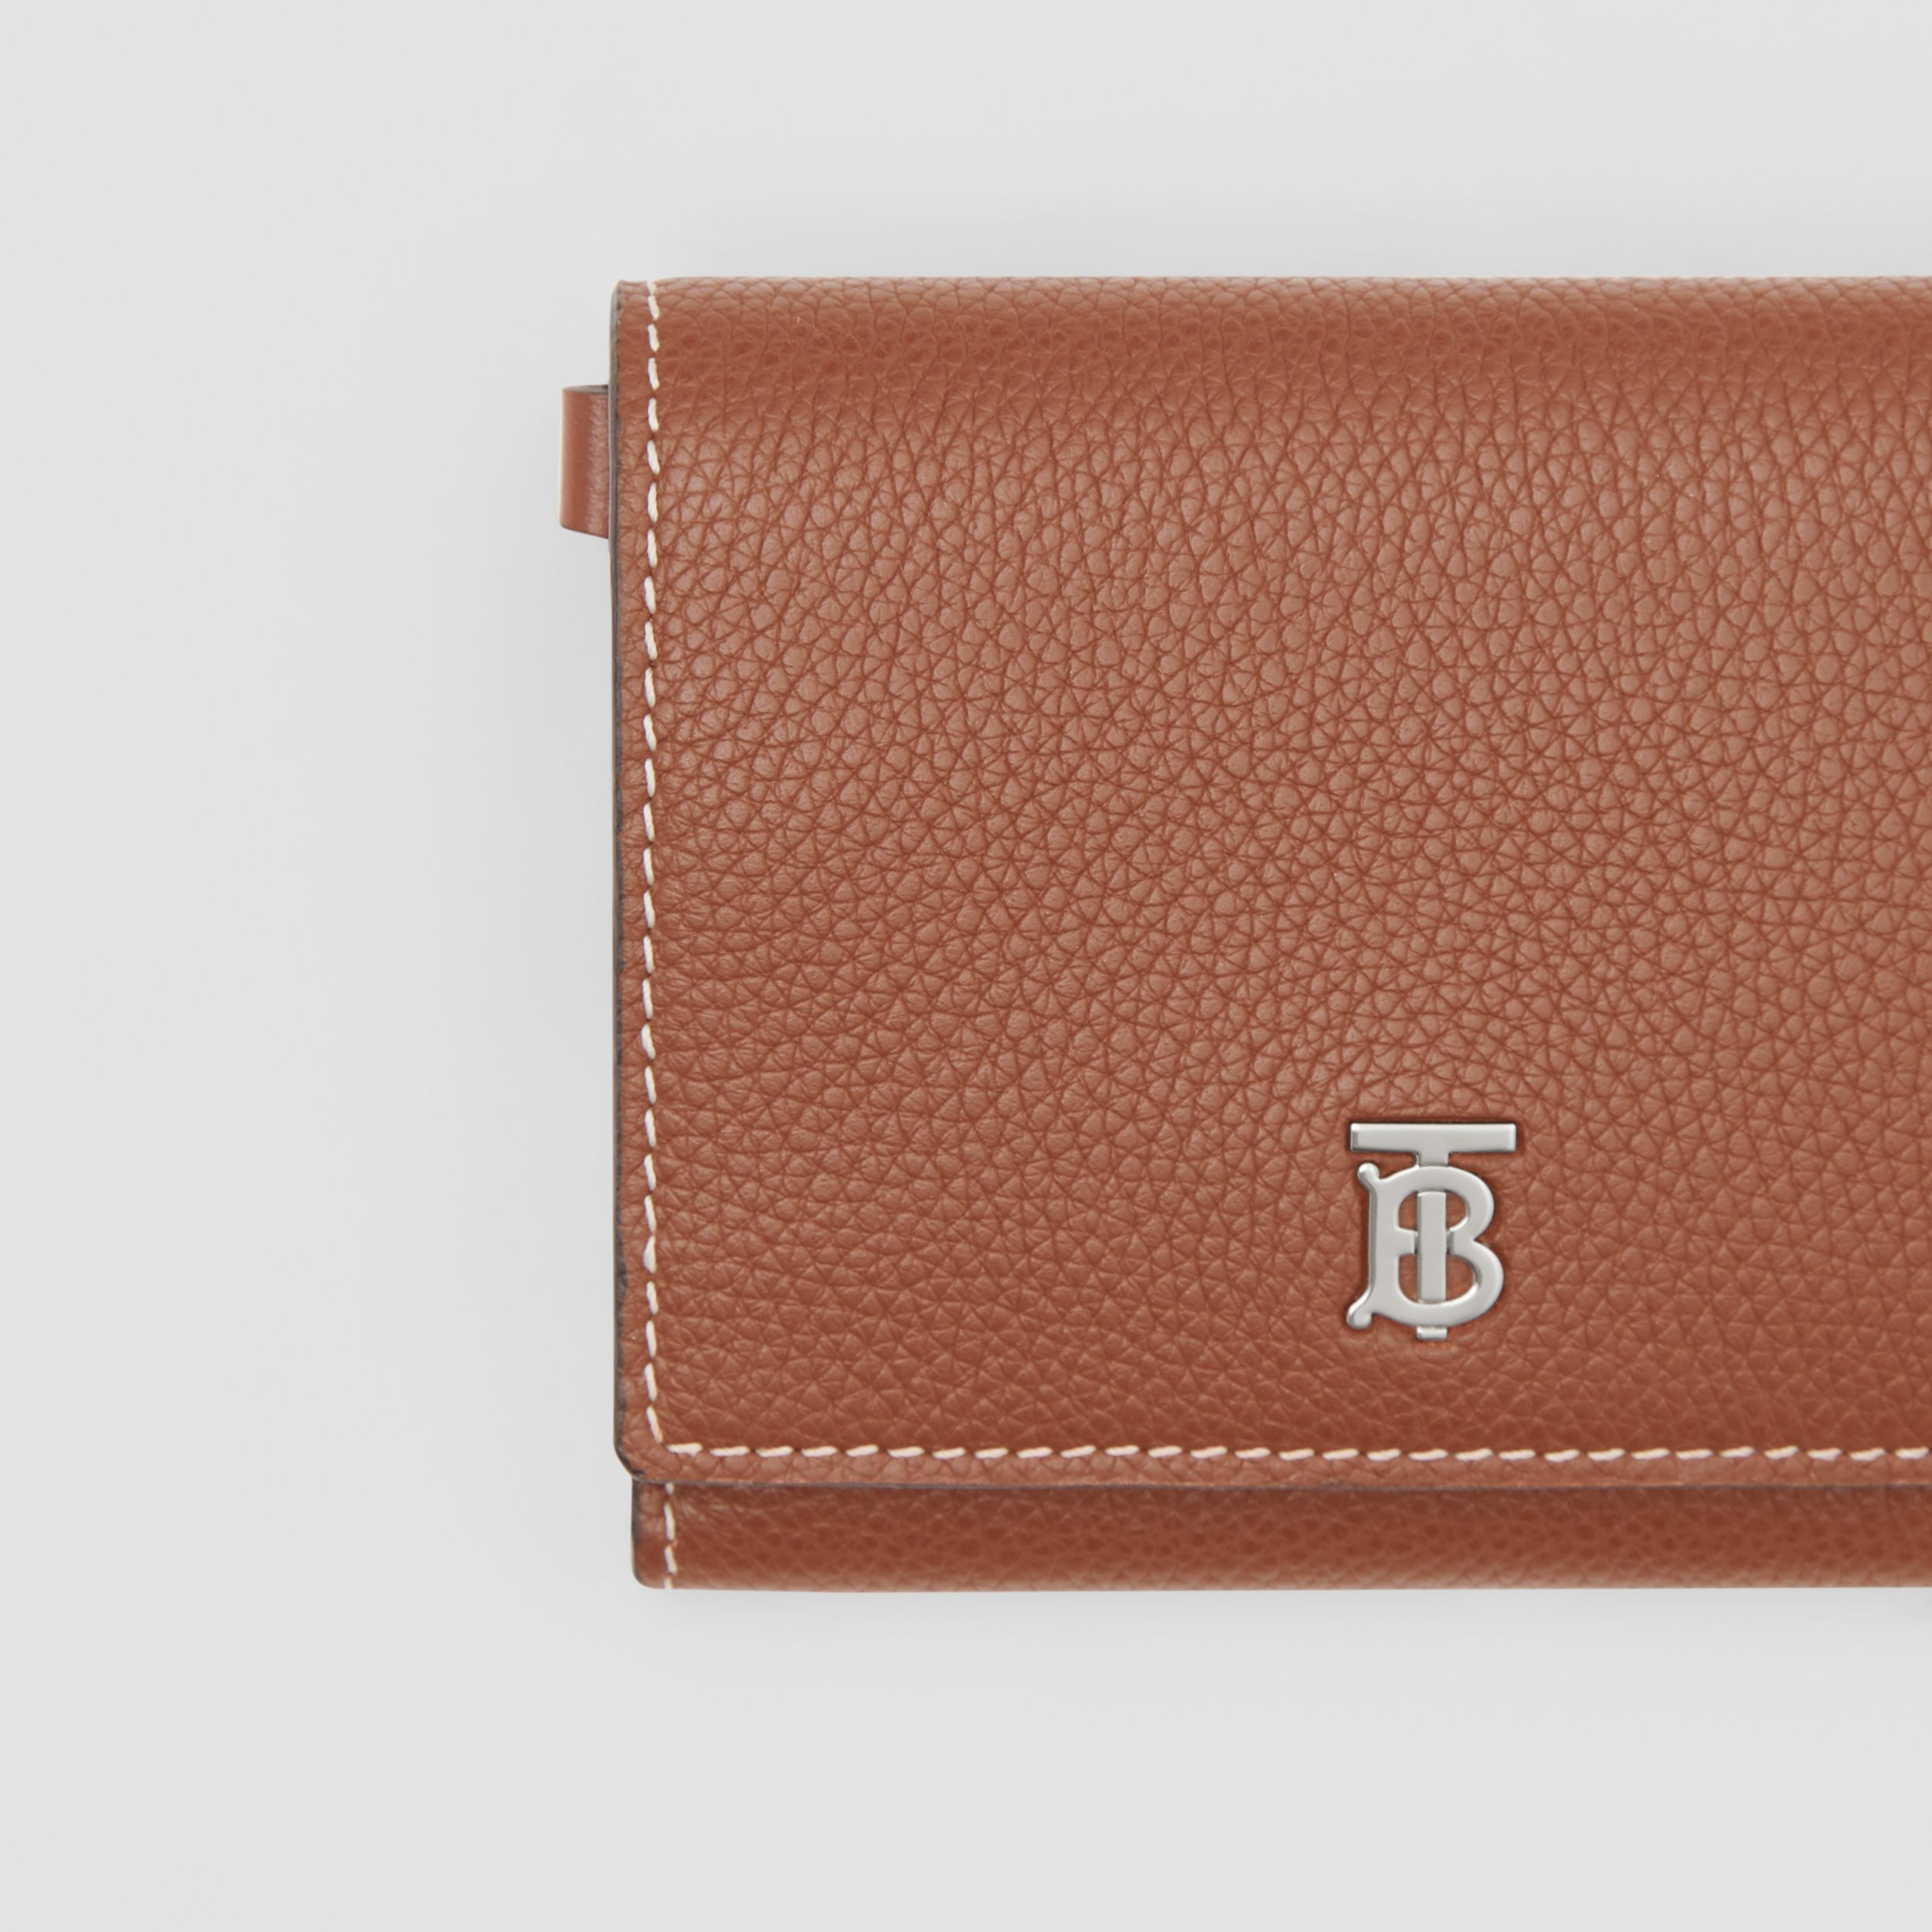 Small Grainy Leather Wallet with Detachable Strap in Tan - Men | Burberry - 2